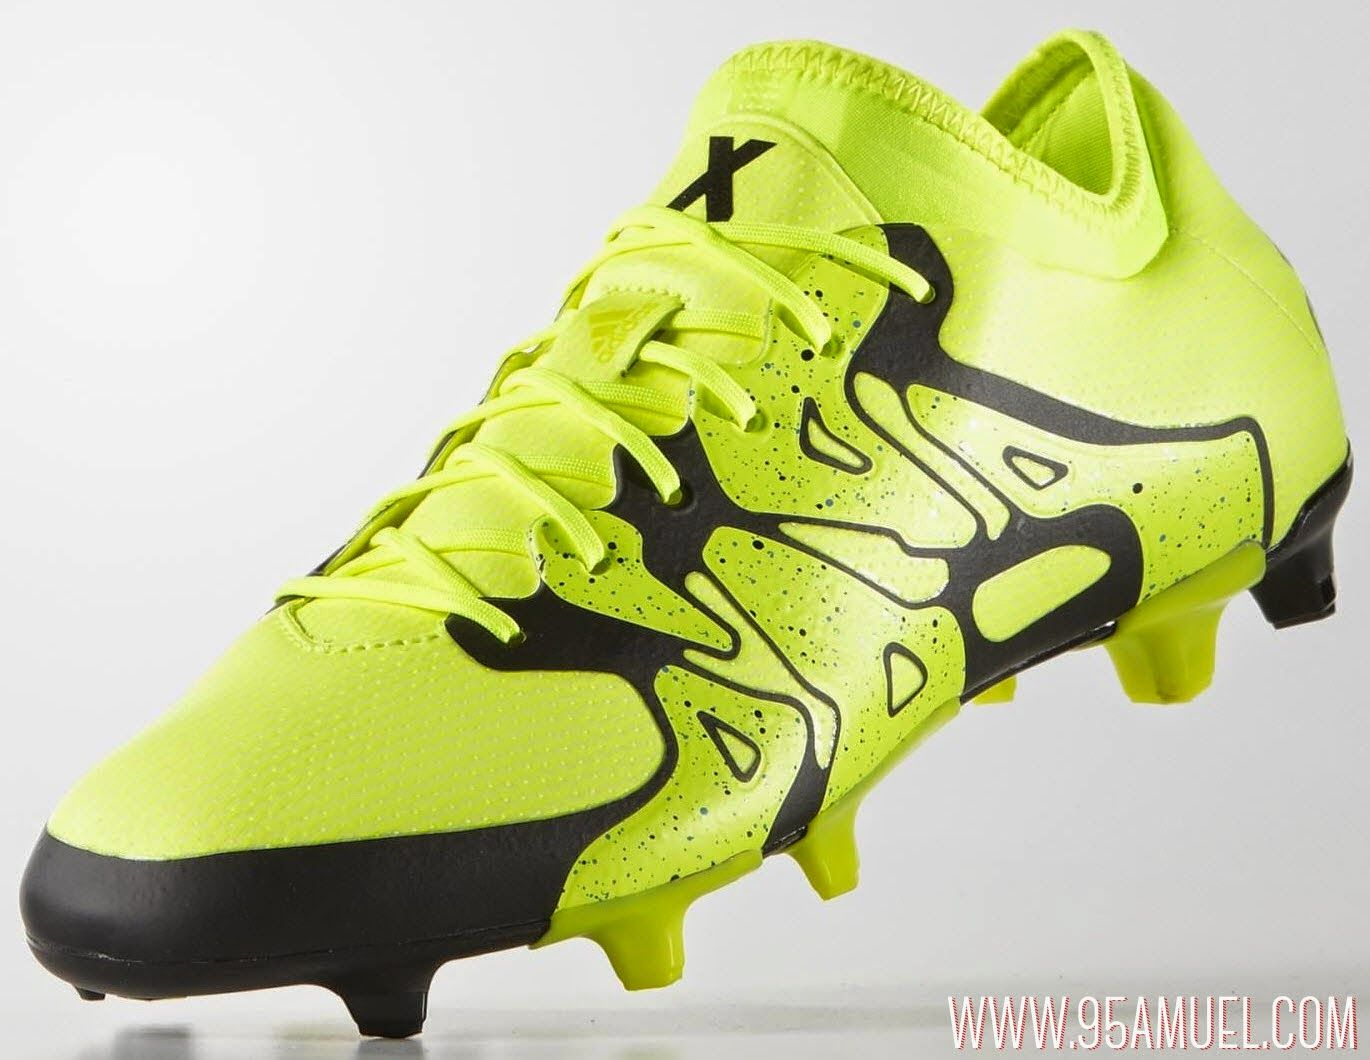 new product af76a 5fd36 Samuel Cannavaro's Official Website: Adidas X 2015 Boots ...